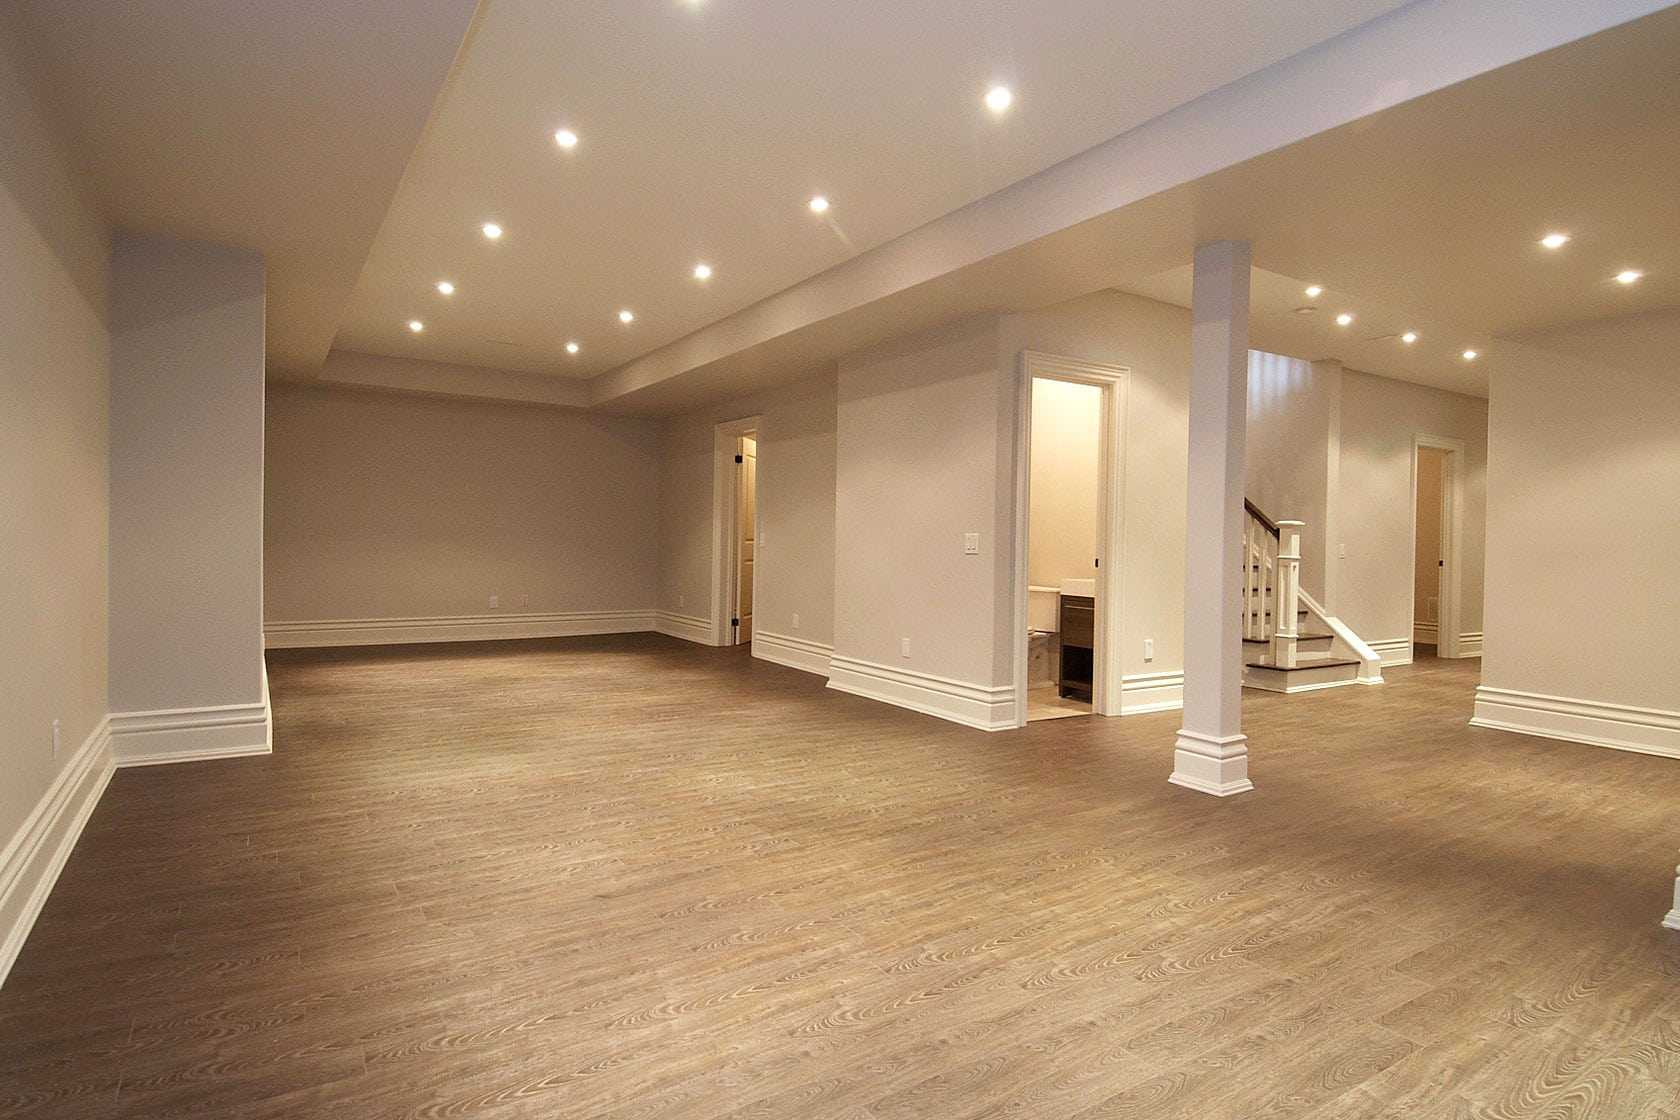 https://fredconstructioninc.com/wp-content/uploads/2016/10/Basement-Reno.jpg